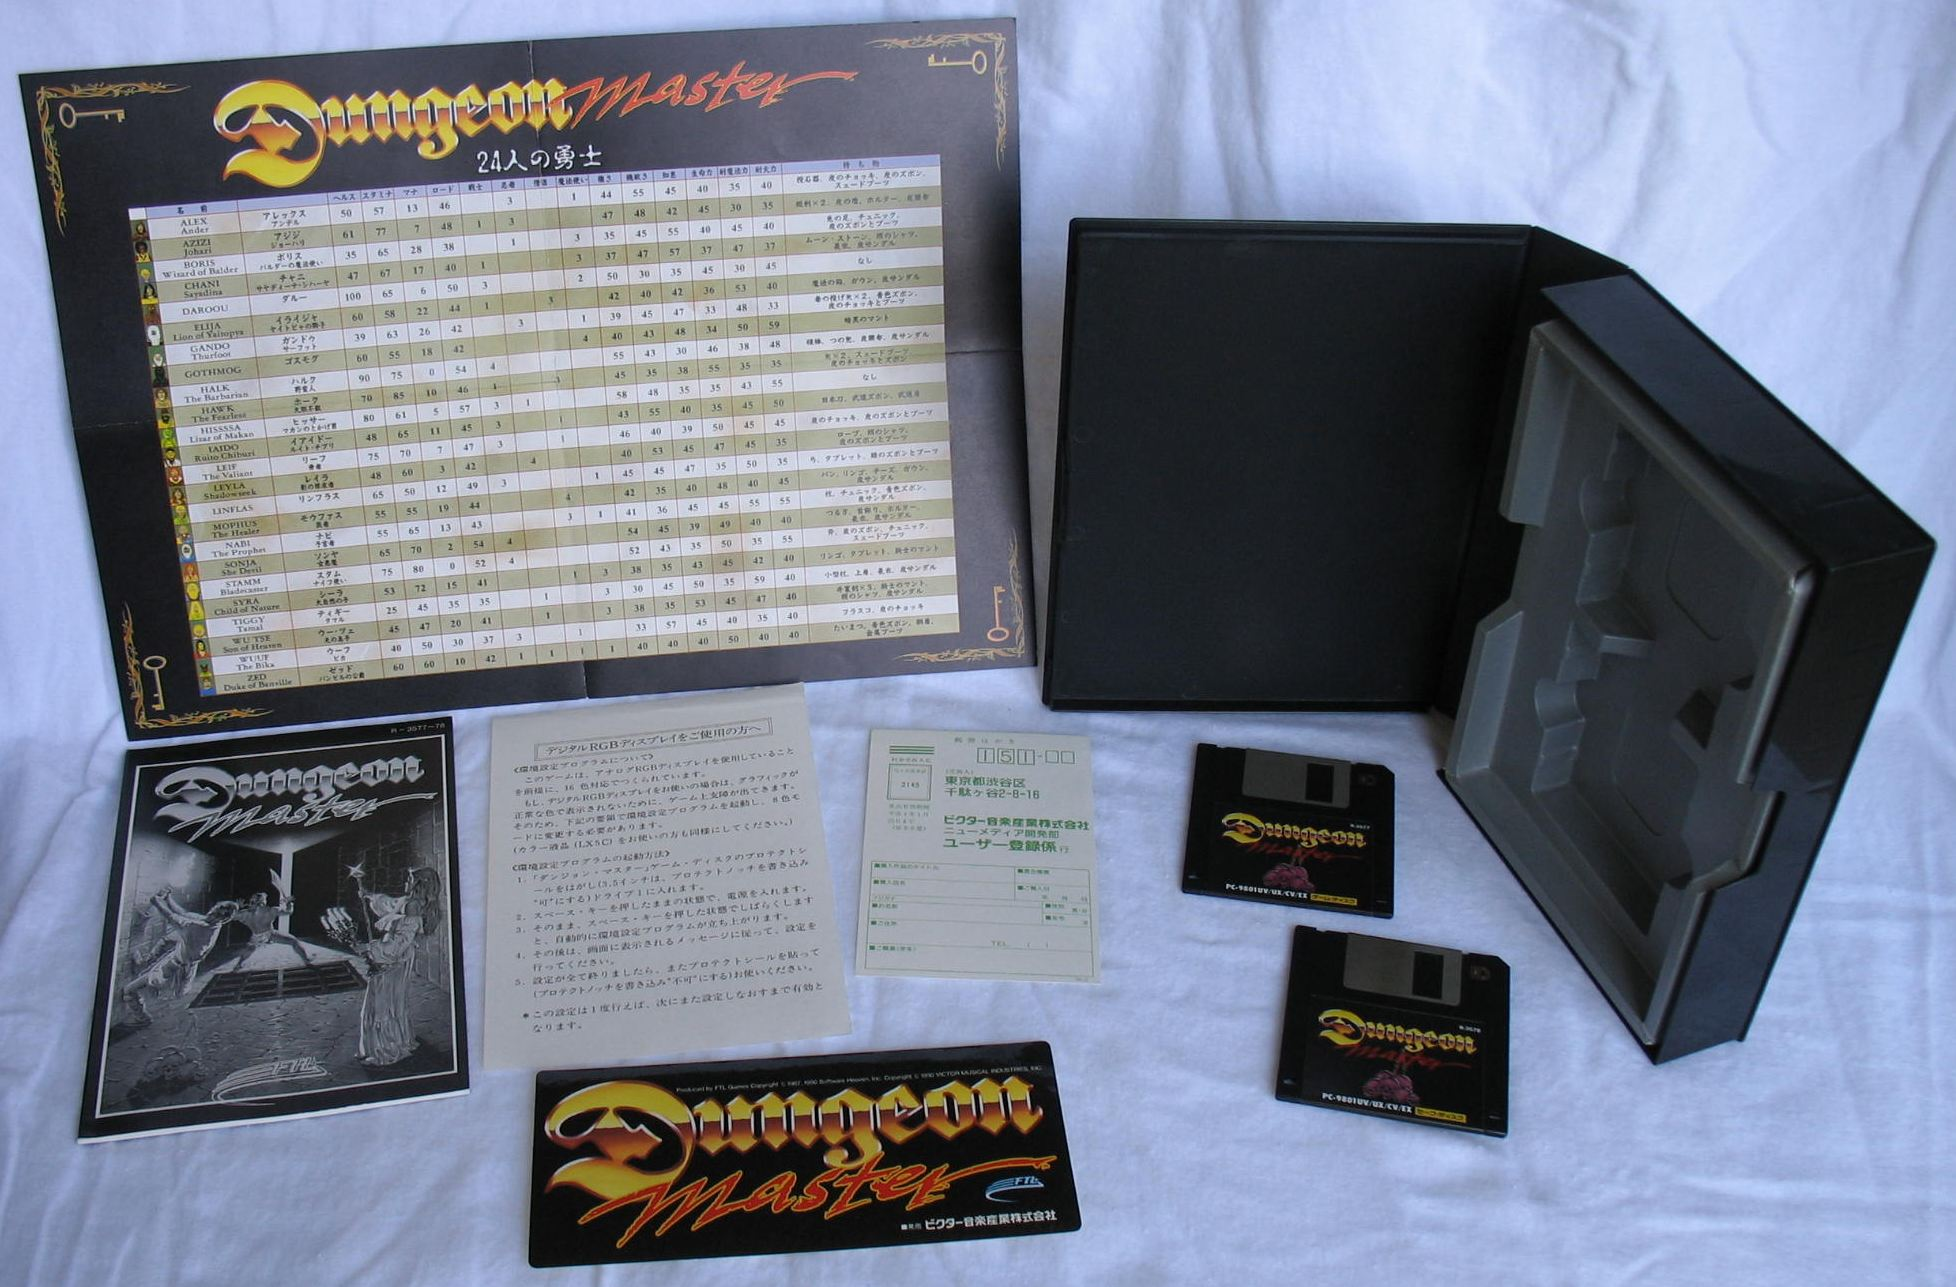 Game - Dungeon Master - JP - PC-9801 - 3.5-inch - All - Overview - Photo